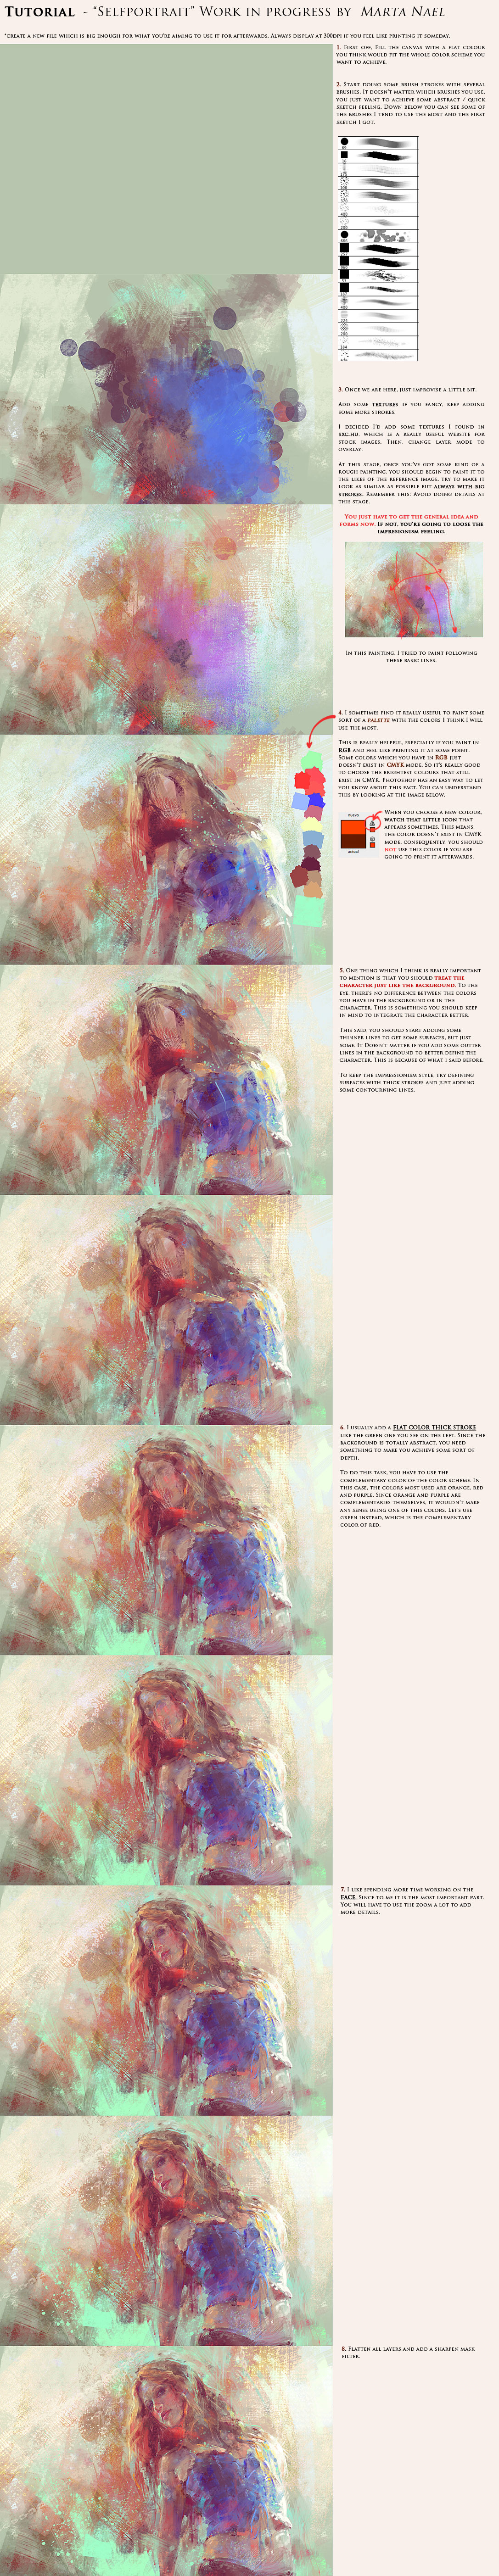 Marta nael digital impressionism tutorial by martanael d31to6m